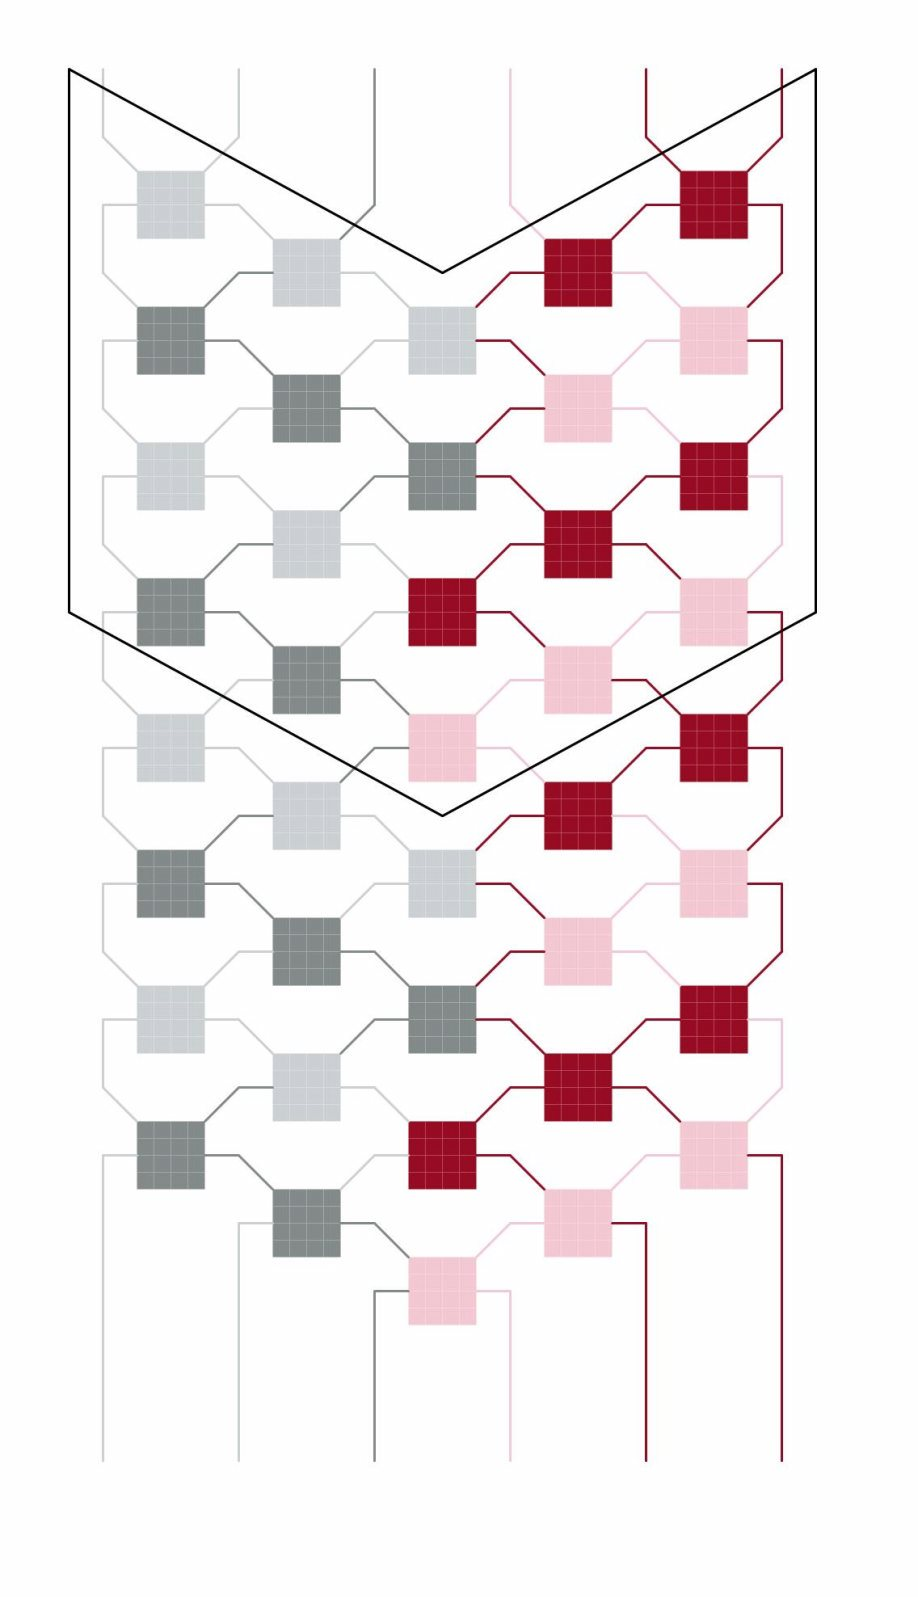 Interlocking V-shape pattern B variation